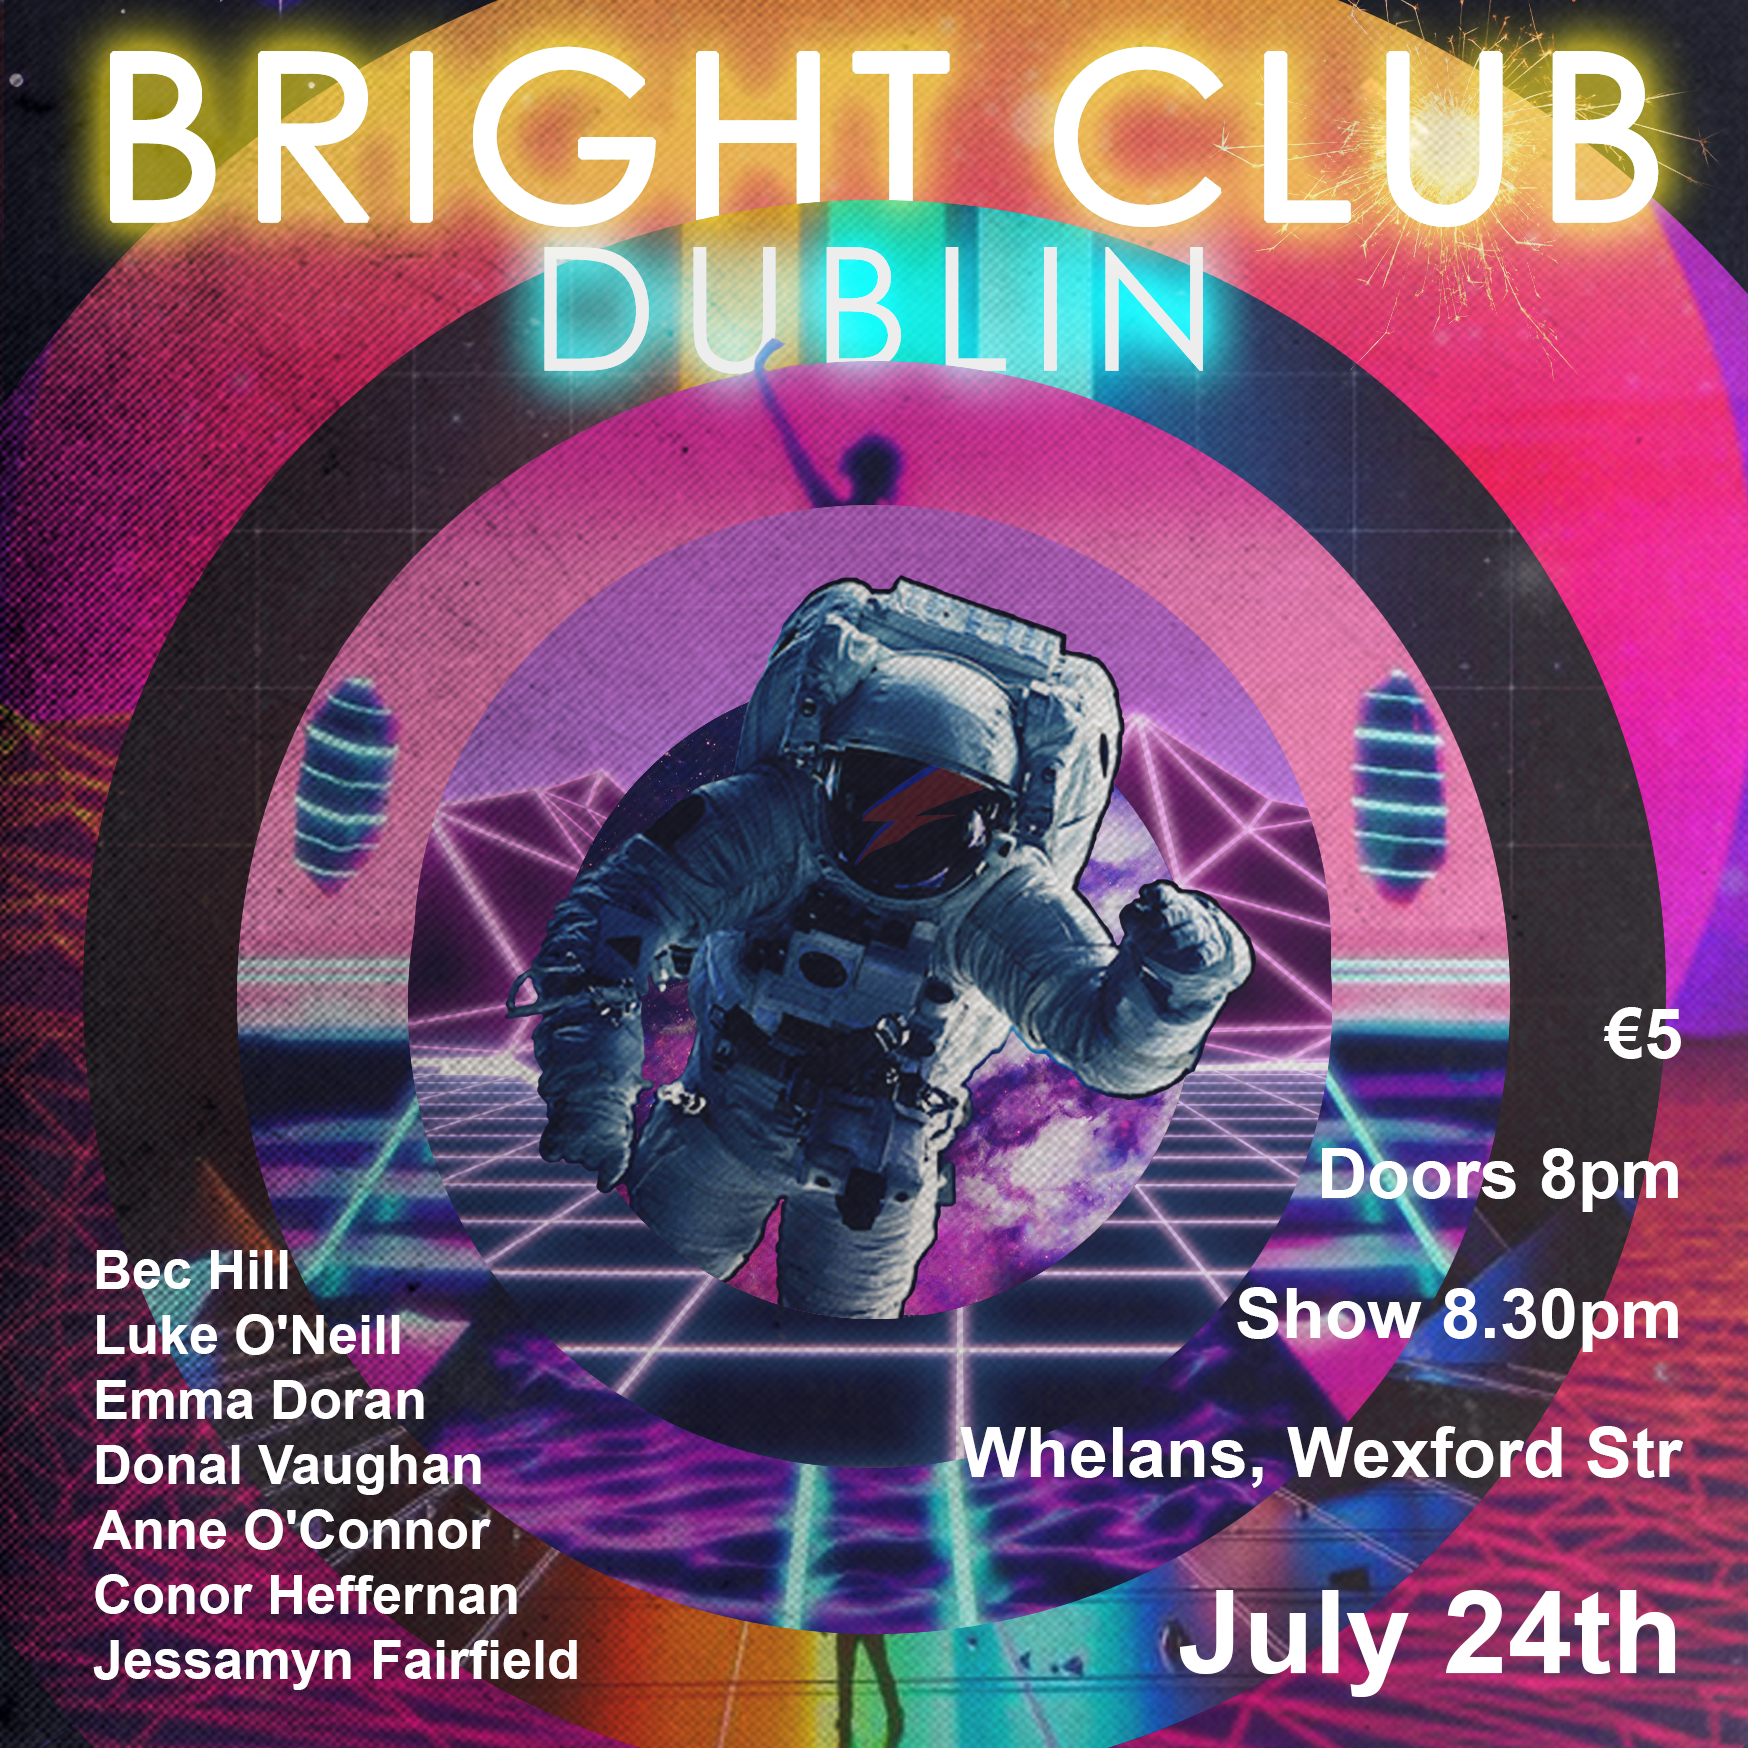 Bright Club Dublin